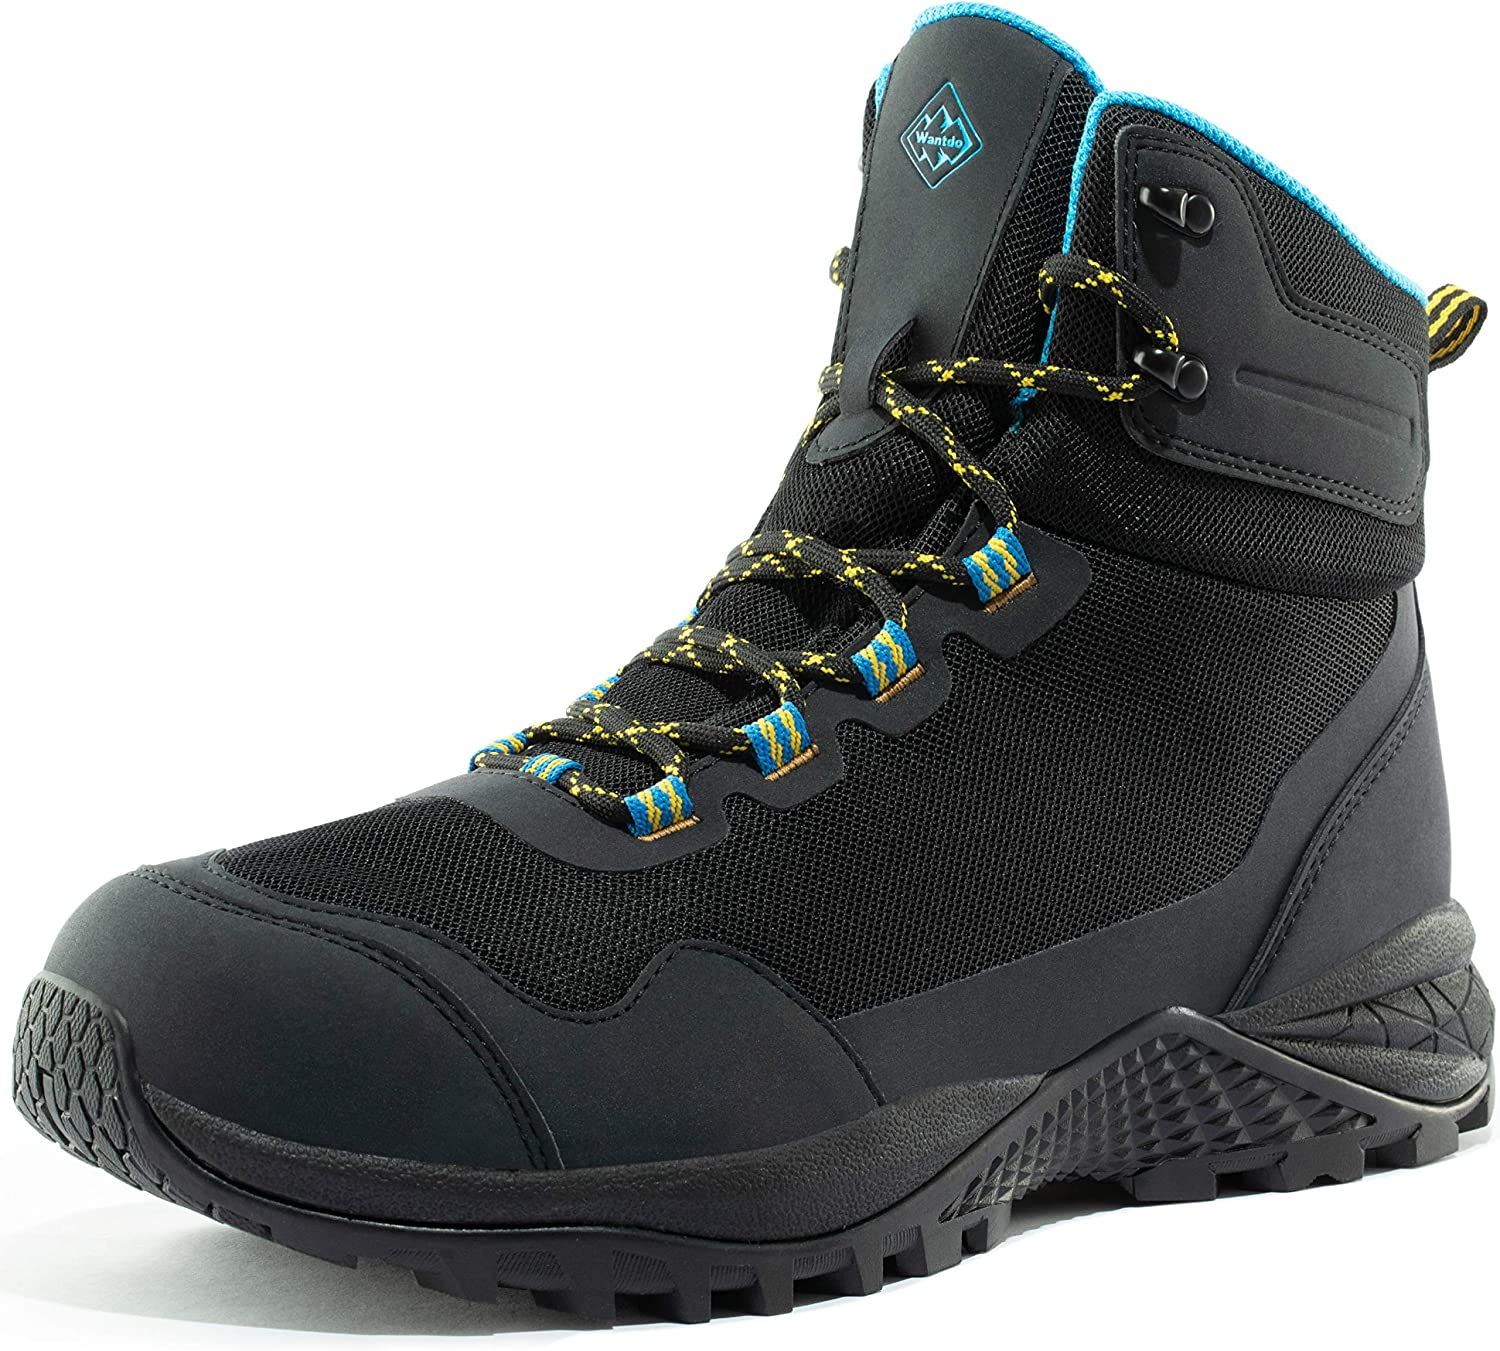 Wantdo Men's Waterproof Hiking Grip Outdoors High-Traction Boots Cheap sale Under blast sales